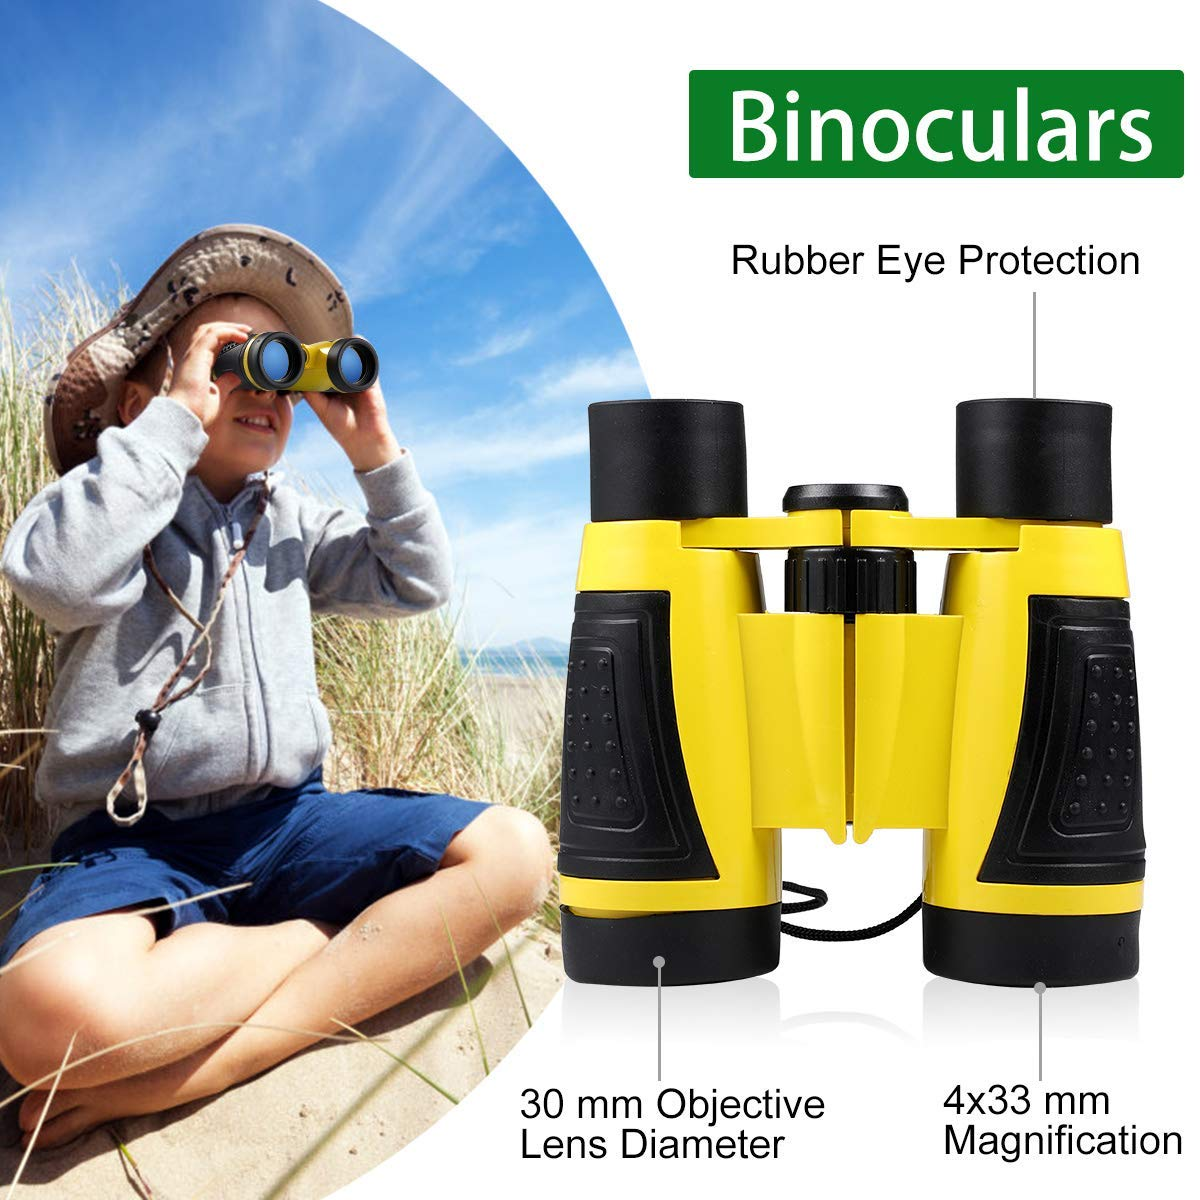 UTTORA Outdoor Explorer Kit, Kids Binoculars Set with Compass, Magnifying Glass, Butterfly Net for 3-12 Year Old Boys and Girls, Kids Telescope Adventure Kit Children Outdoor Educational Kit (22PCS)